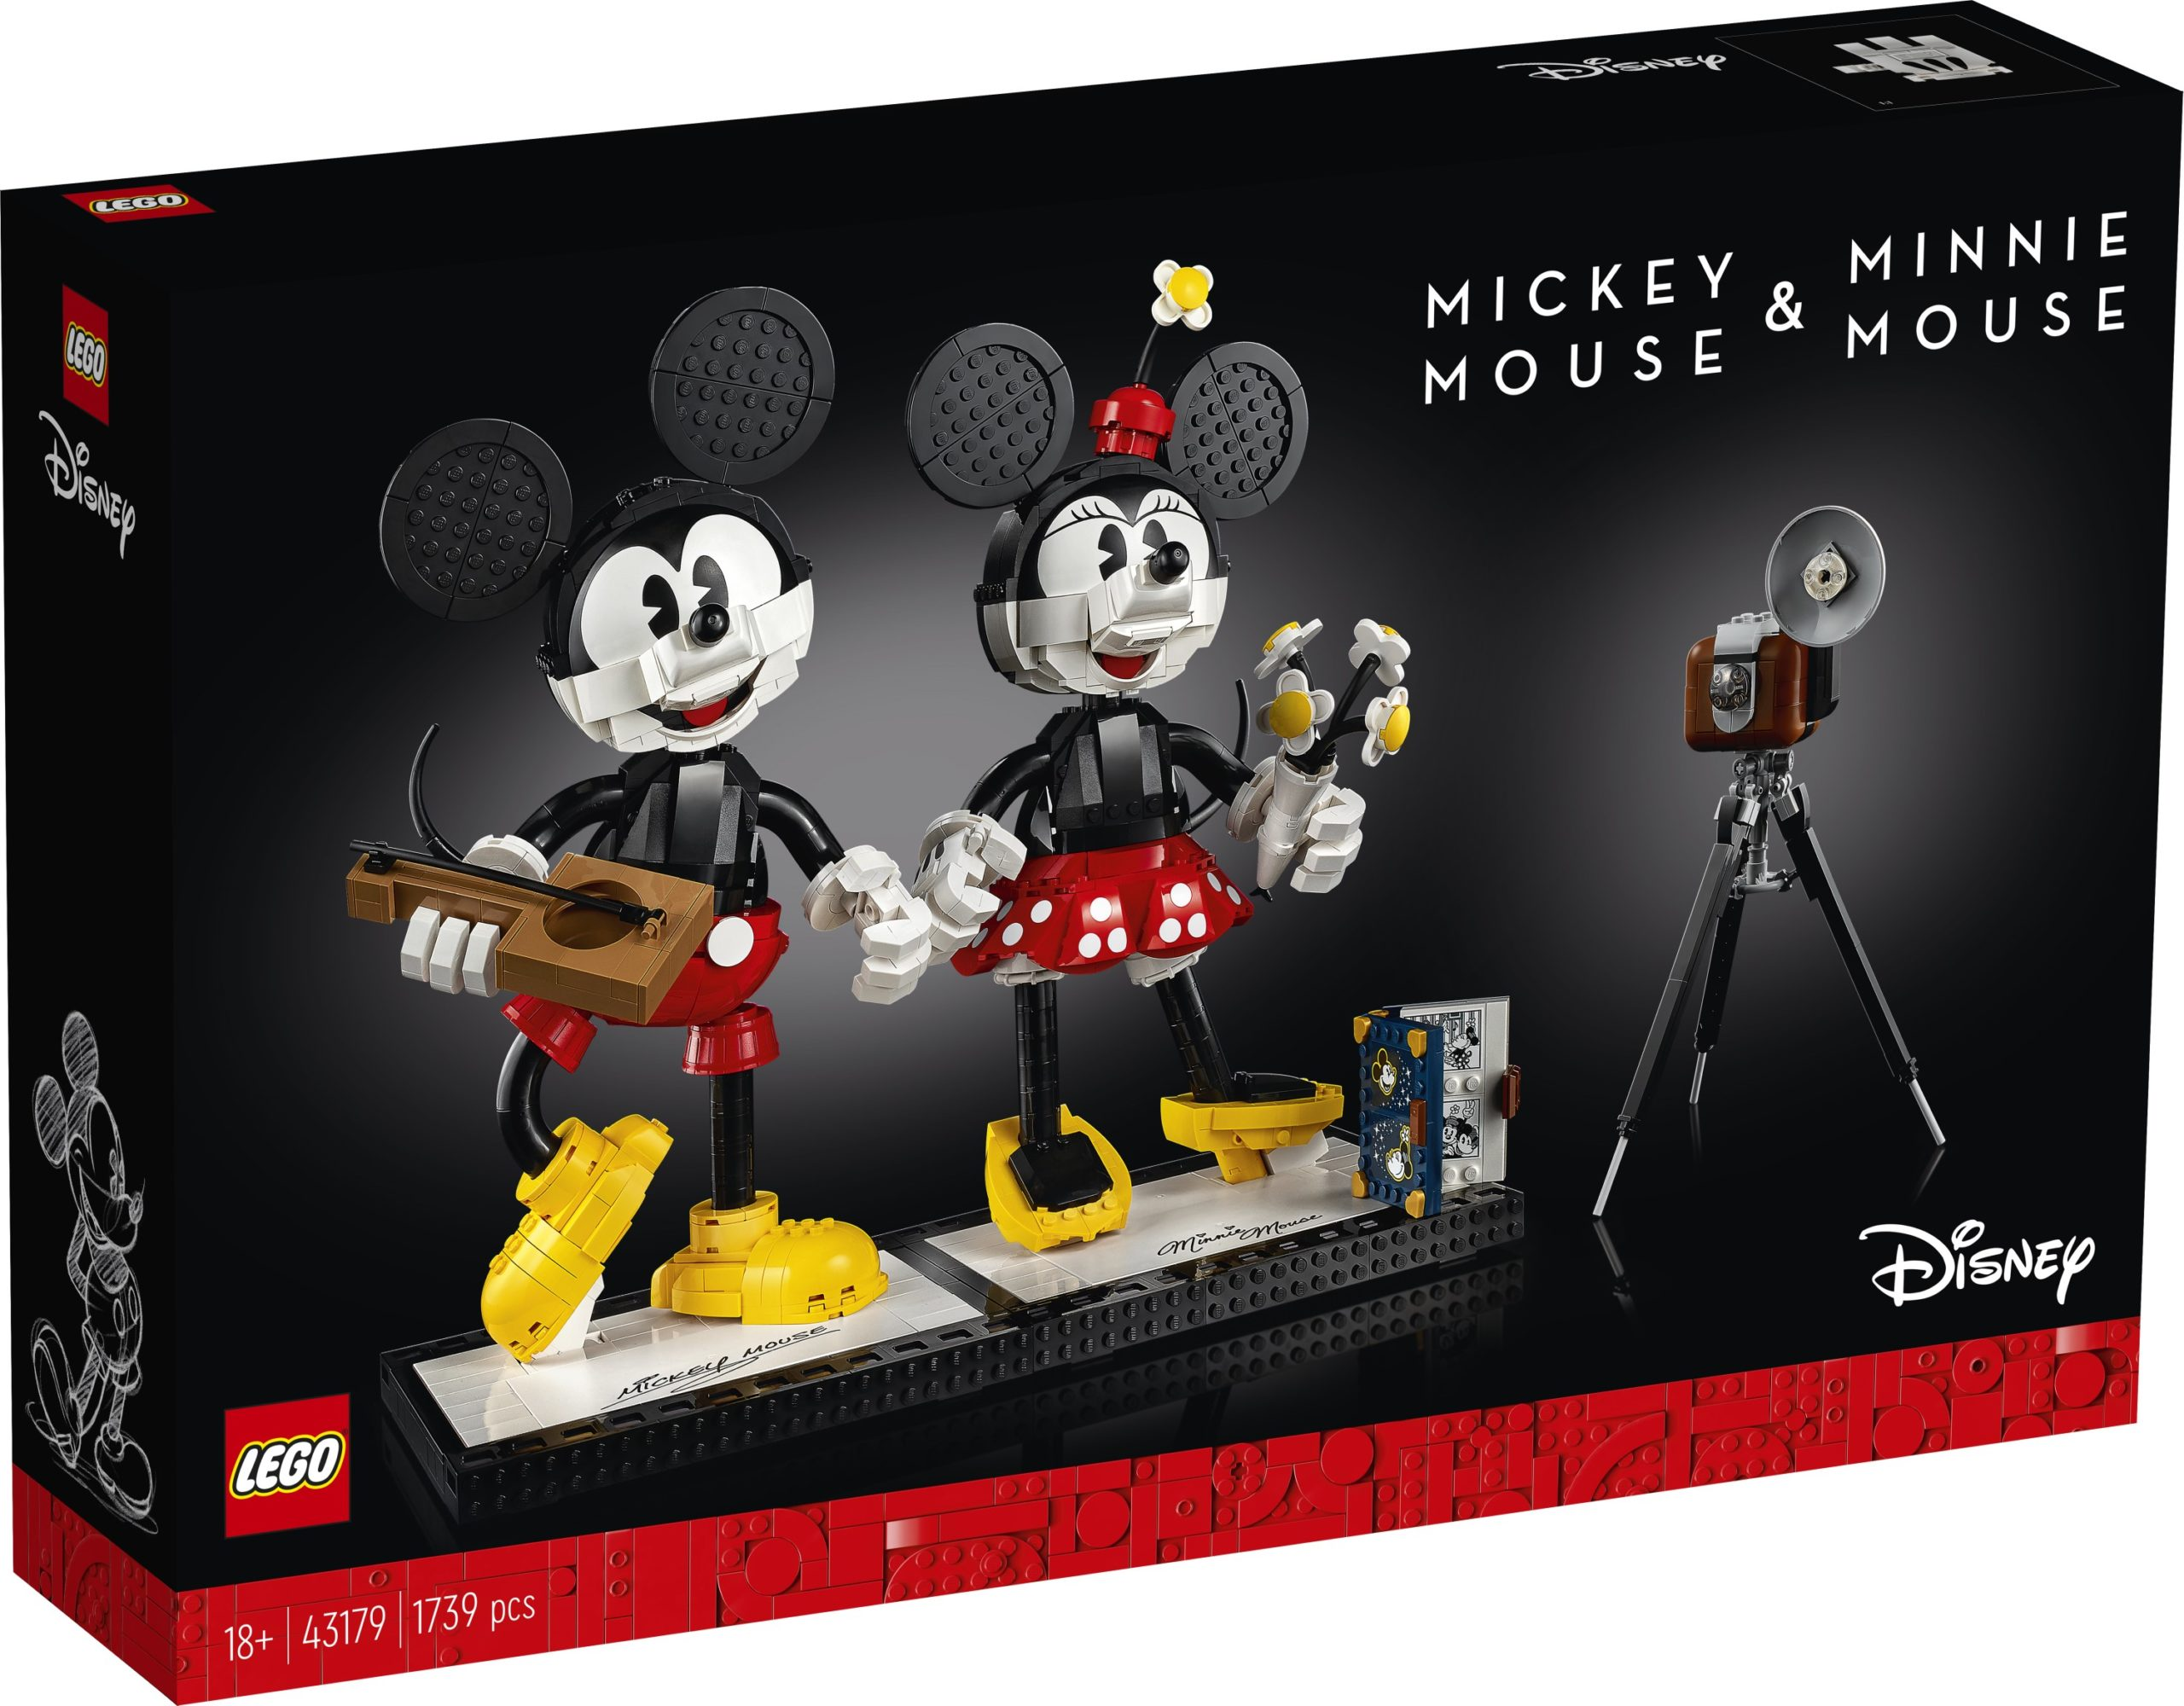 LEGO unveils classic Mickey and Minnie Mouse buildable figures for adults 15